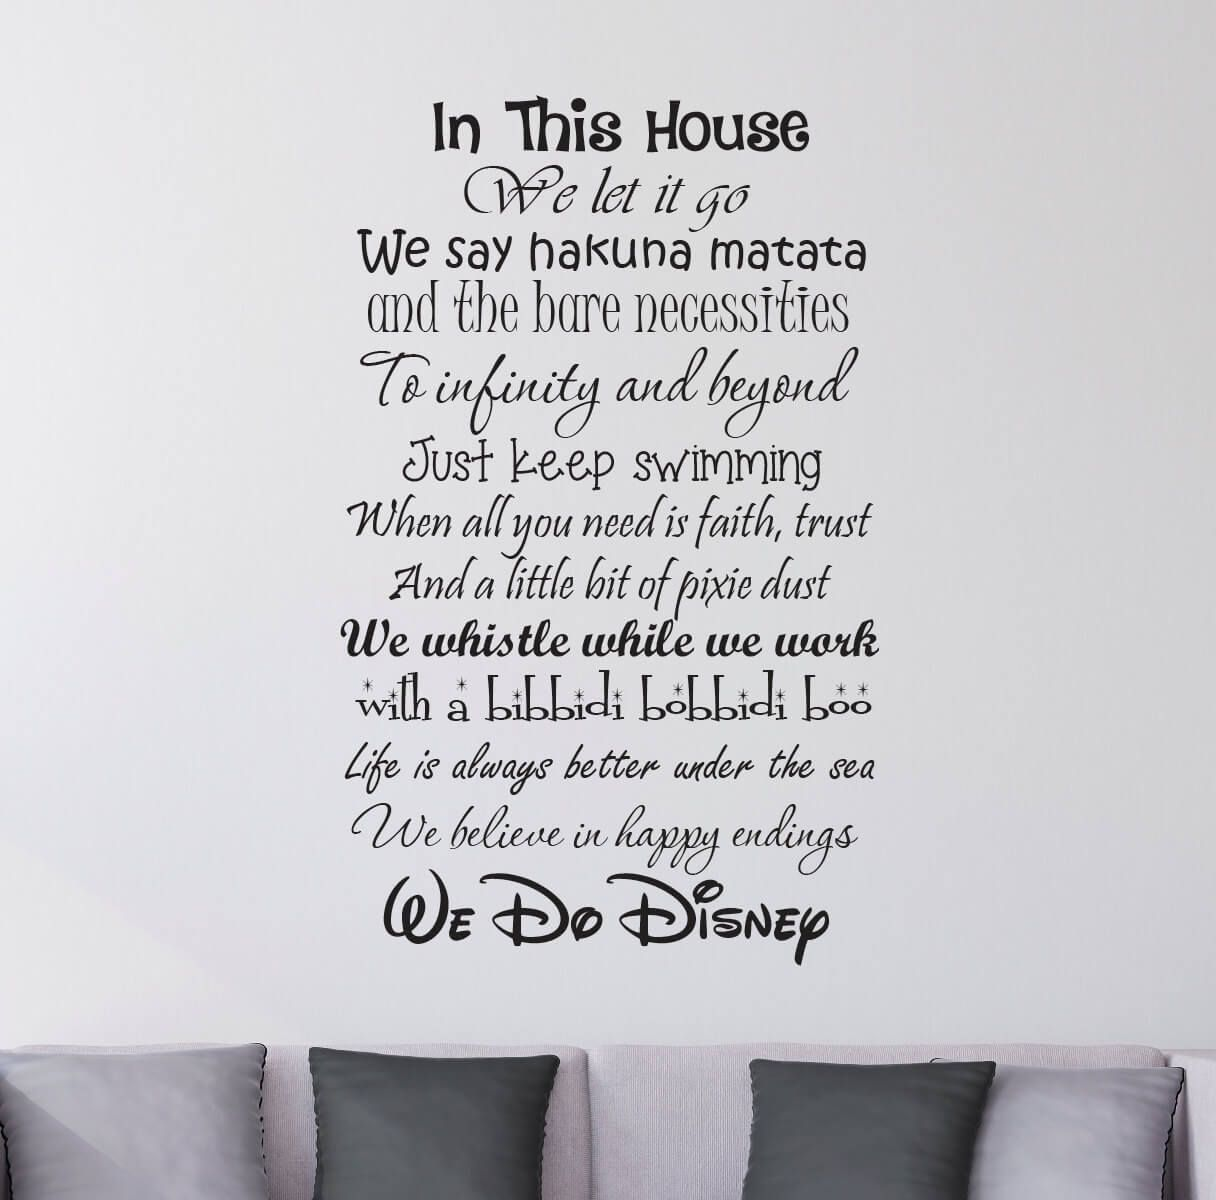 In this house we do disney wall stickers decals quote wall in this house we do disney wall stickers decals amipublicfo Choice Image